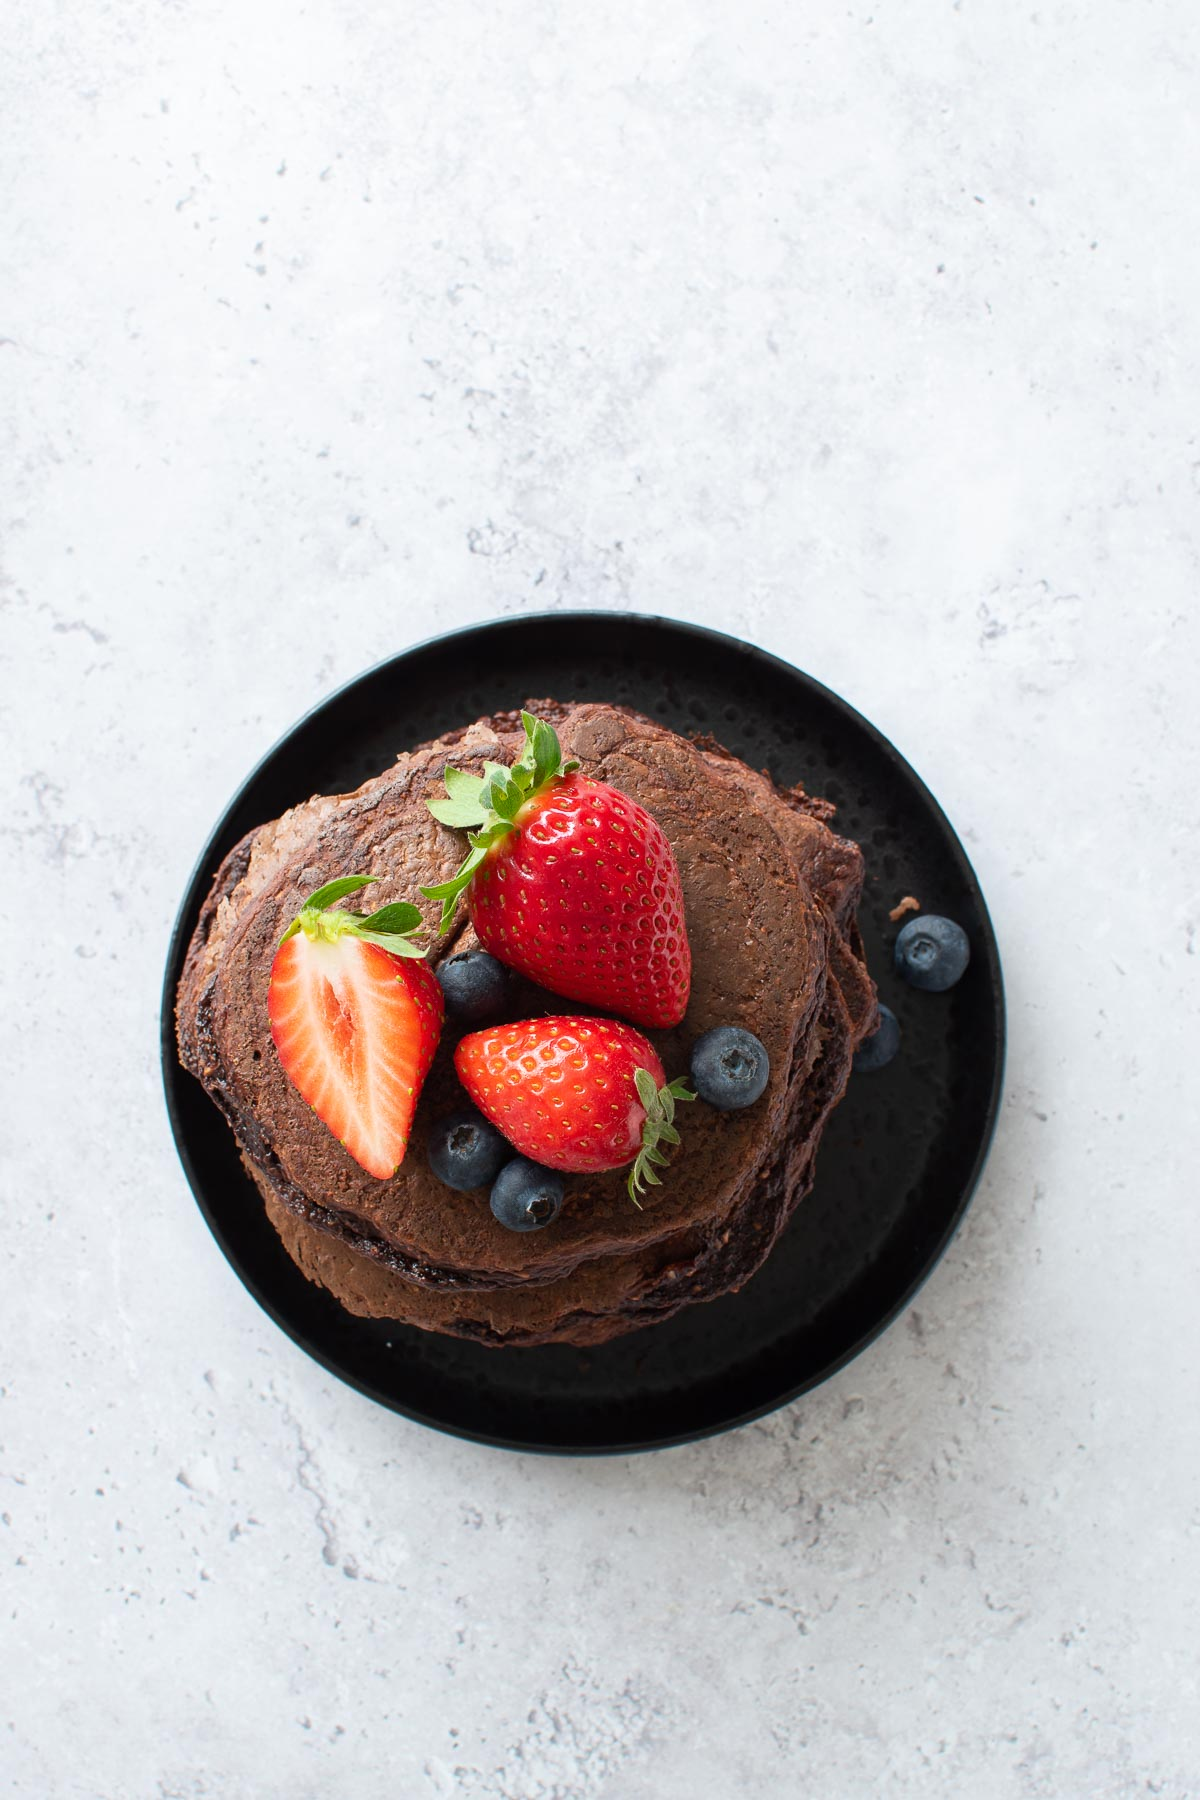 A plate with chocolate pancakes with protein powder.